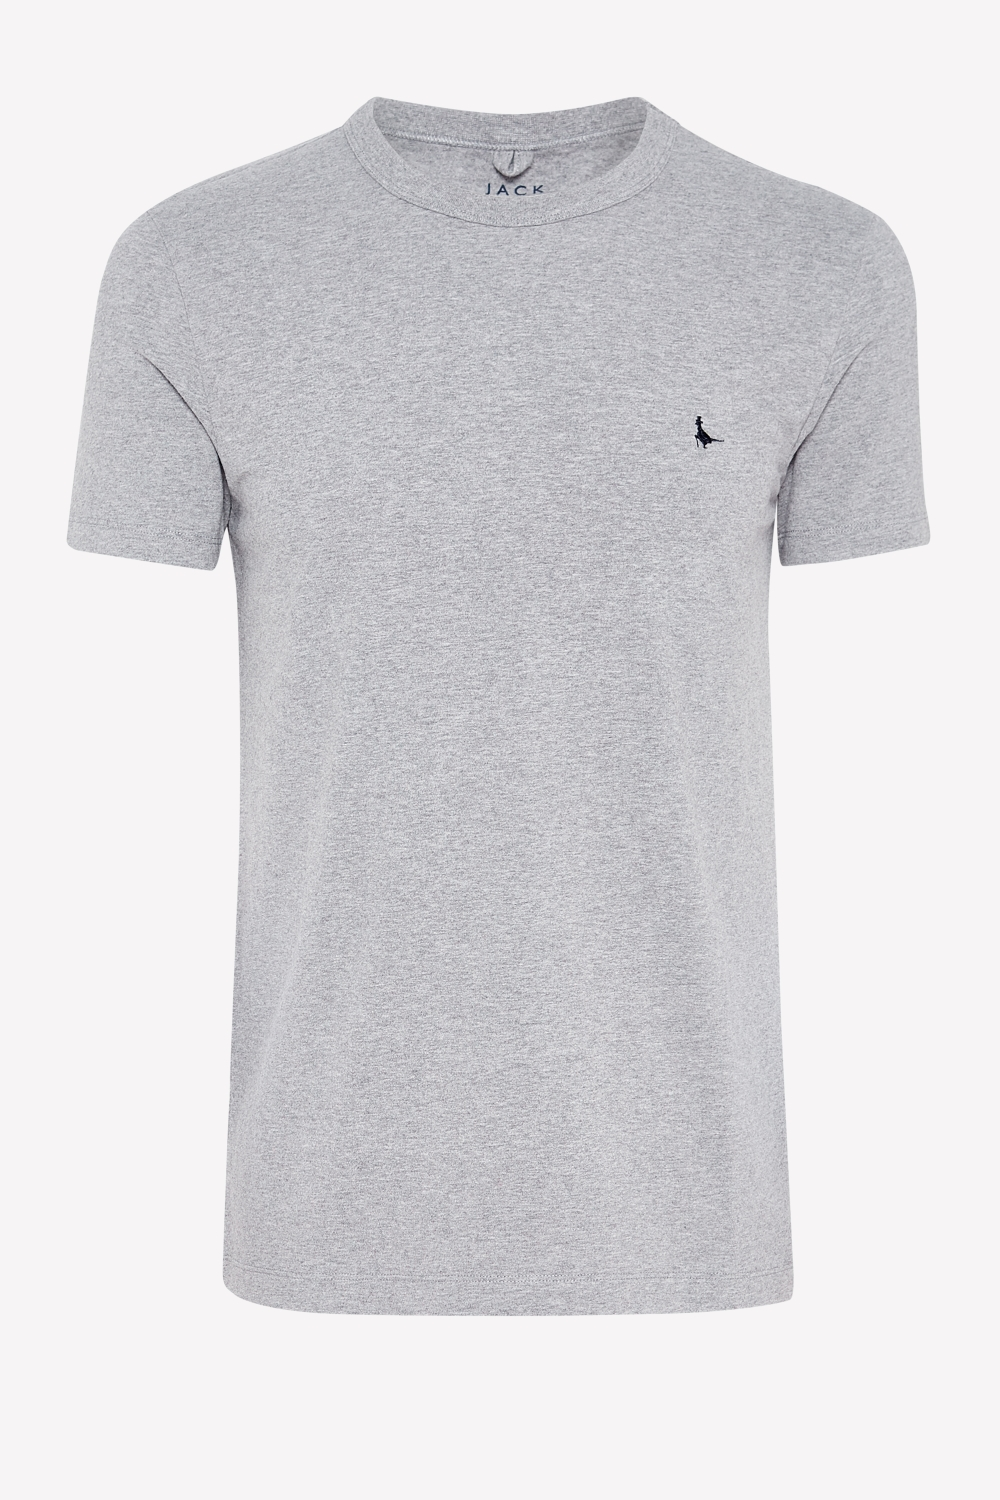 Jack Wills Grey LANDRIER STRETCH T-SHIRT